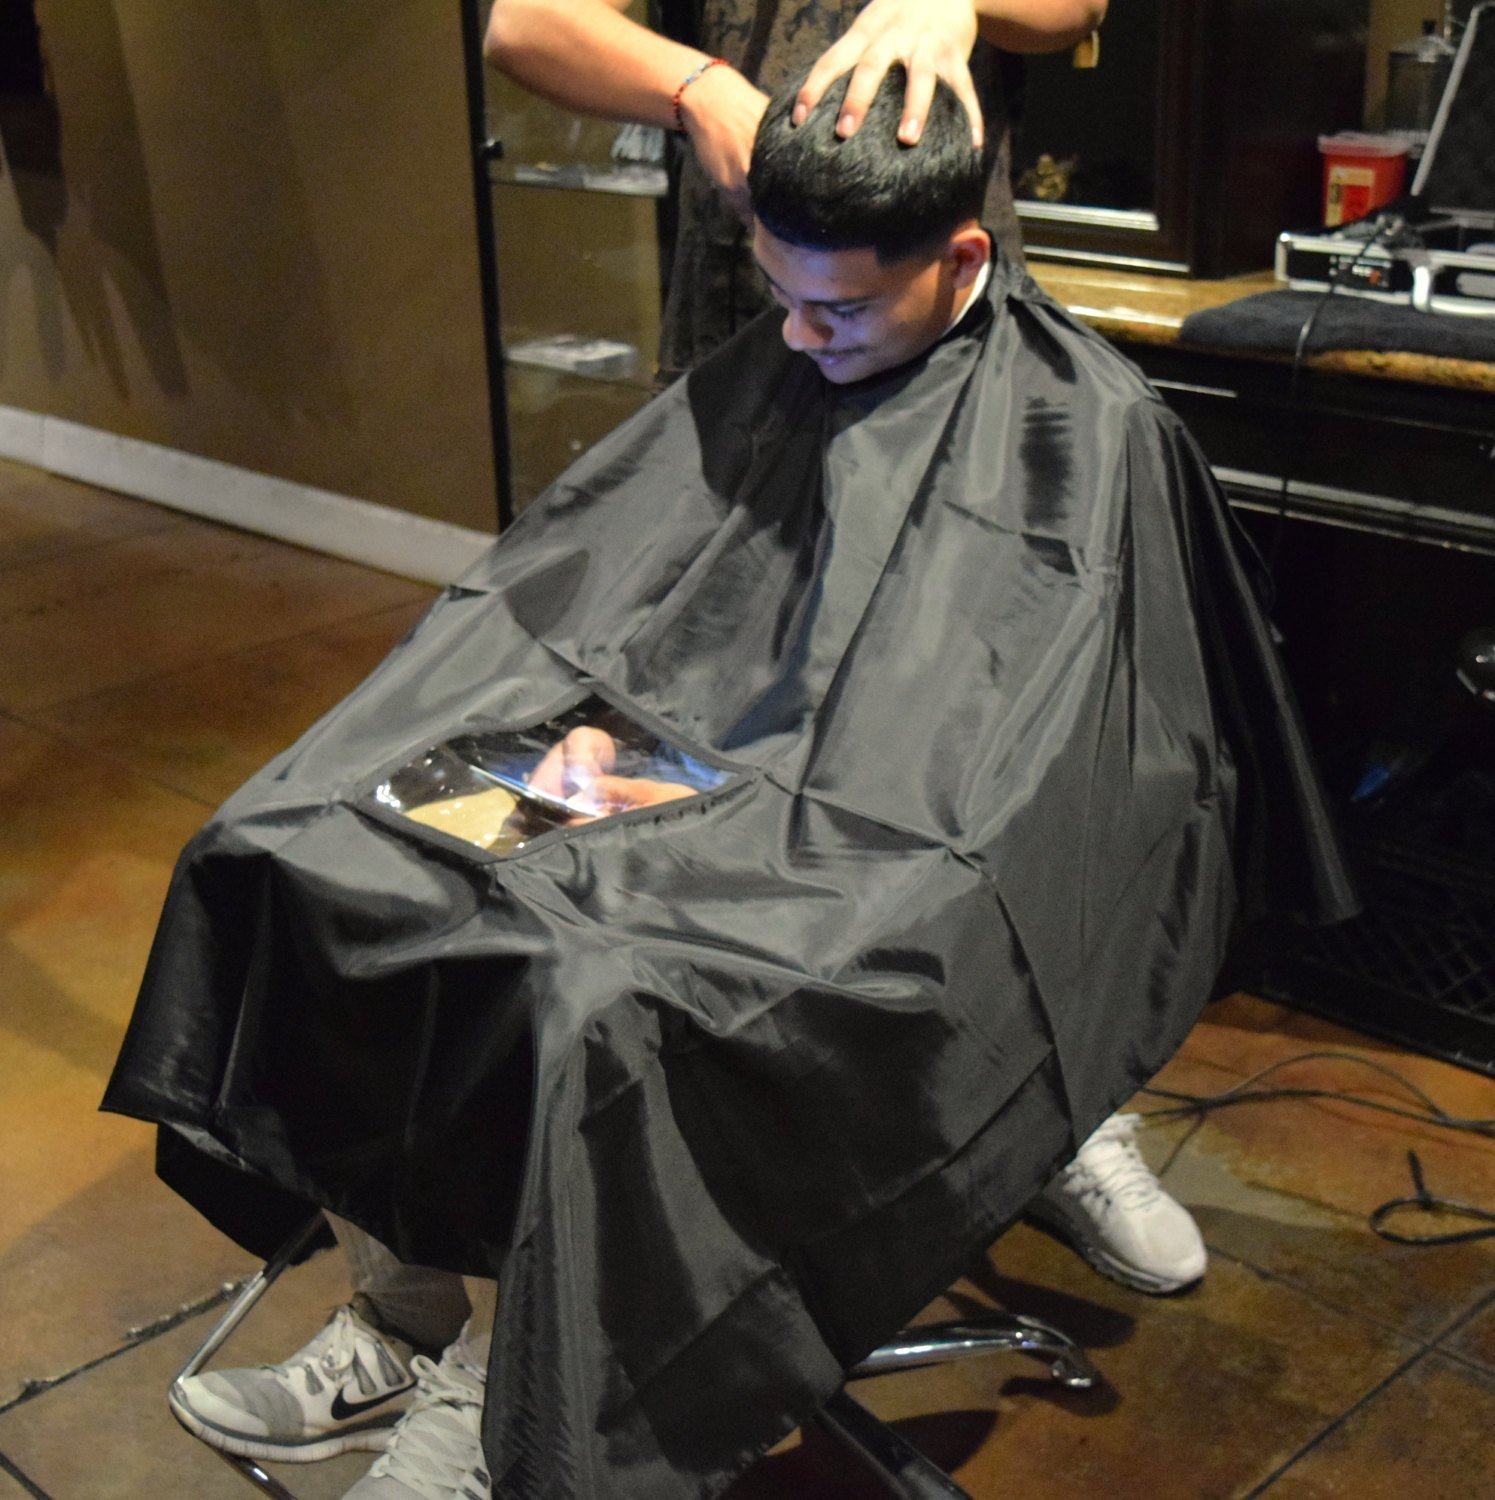 The Best Black Hair Cutting Cape Hairdresser Barber Gown Stylist Pictures